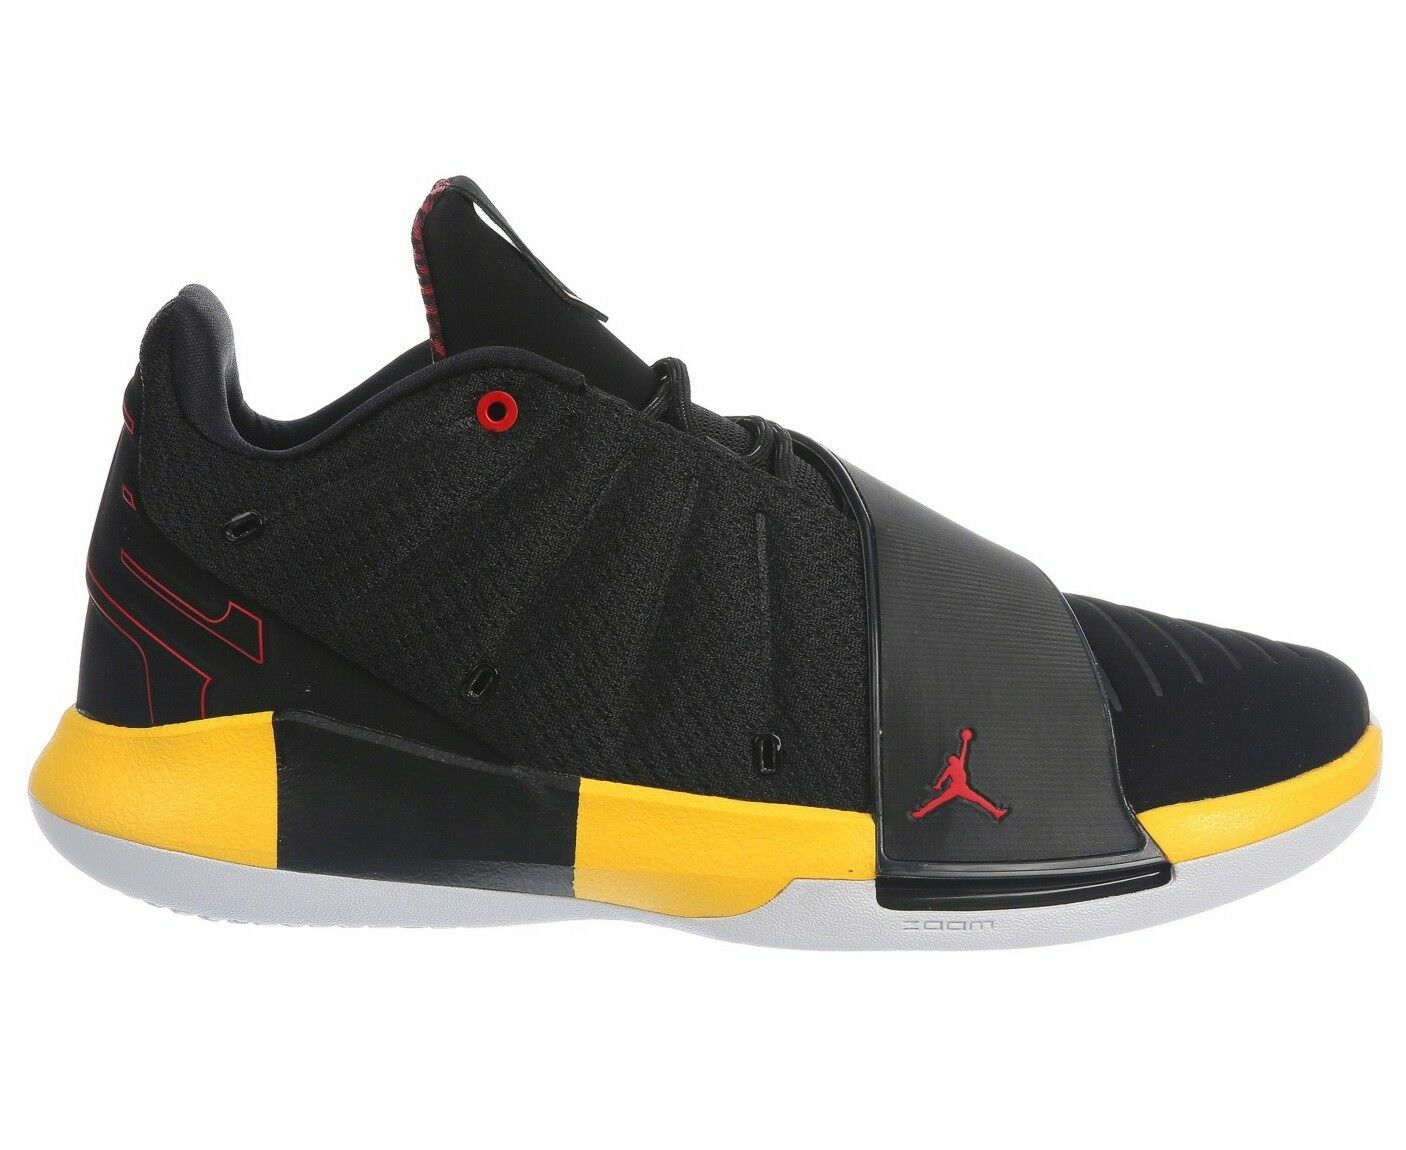 Jordan CP3.XI Taxi homme AA1272-002 noir rouge jaune Basket chaussures Taille 11